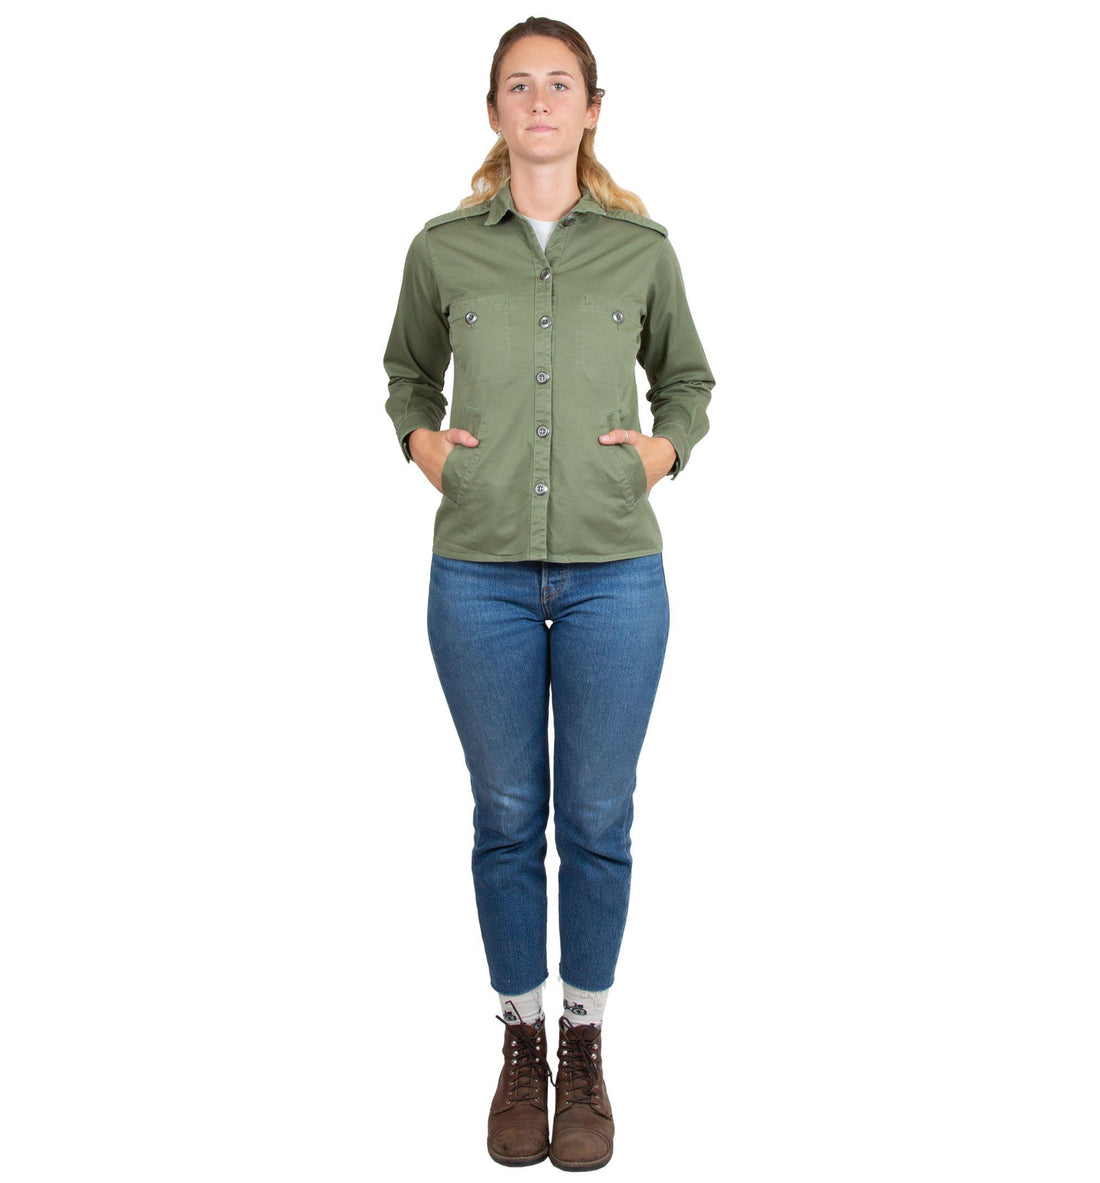 Women's Deck Shirt Jacket - Tops - Iron and Resin